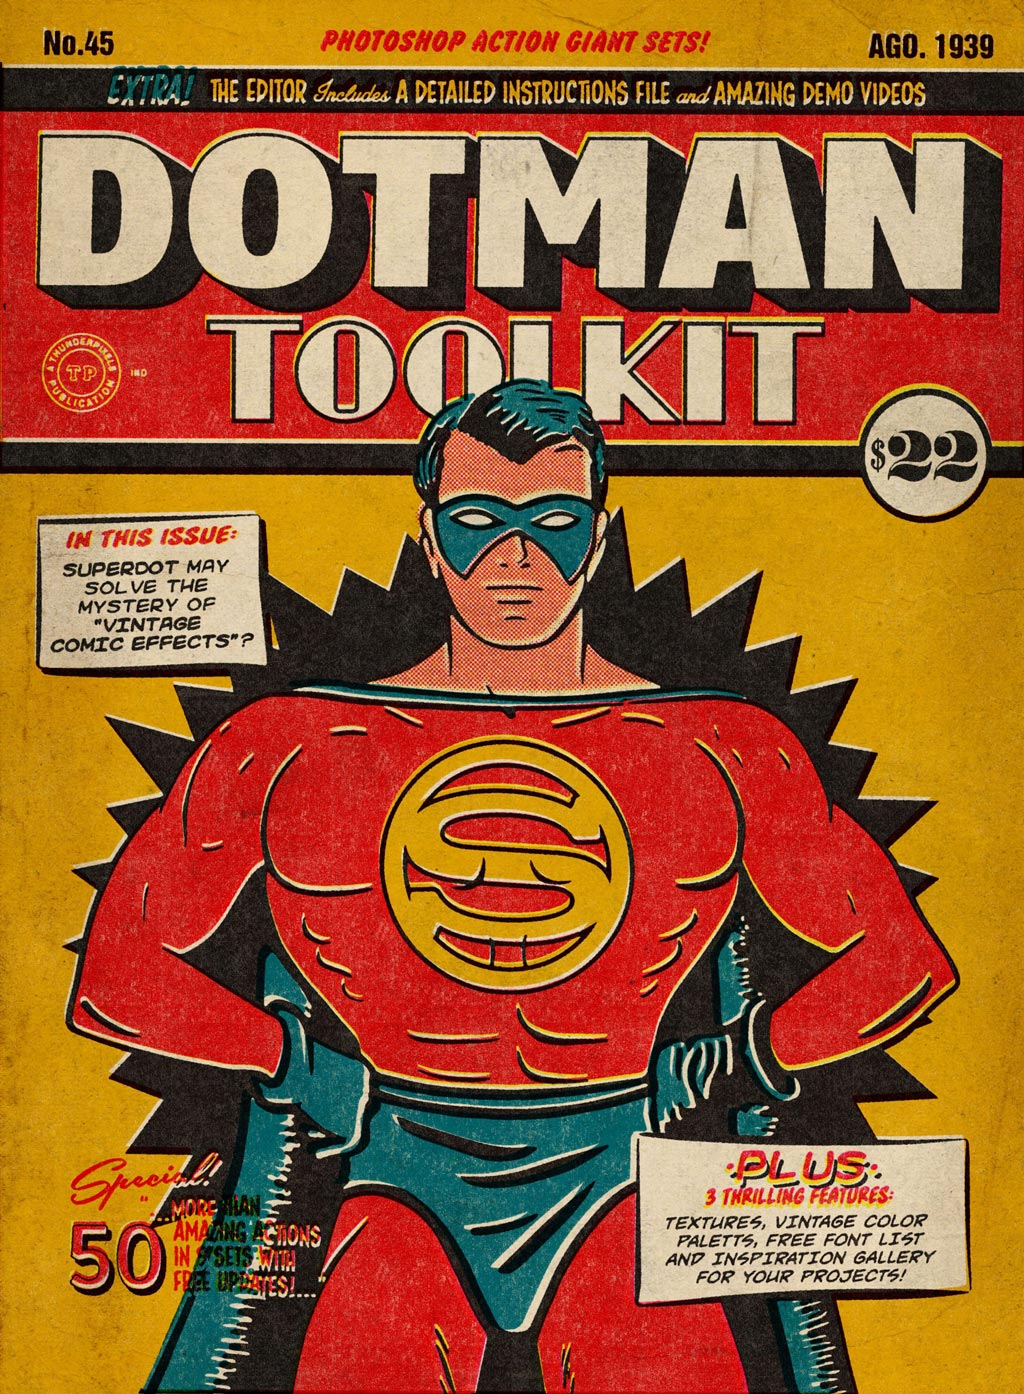 DotMan ToolKit Vintage Comic Effects